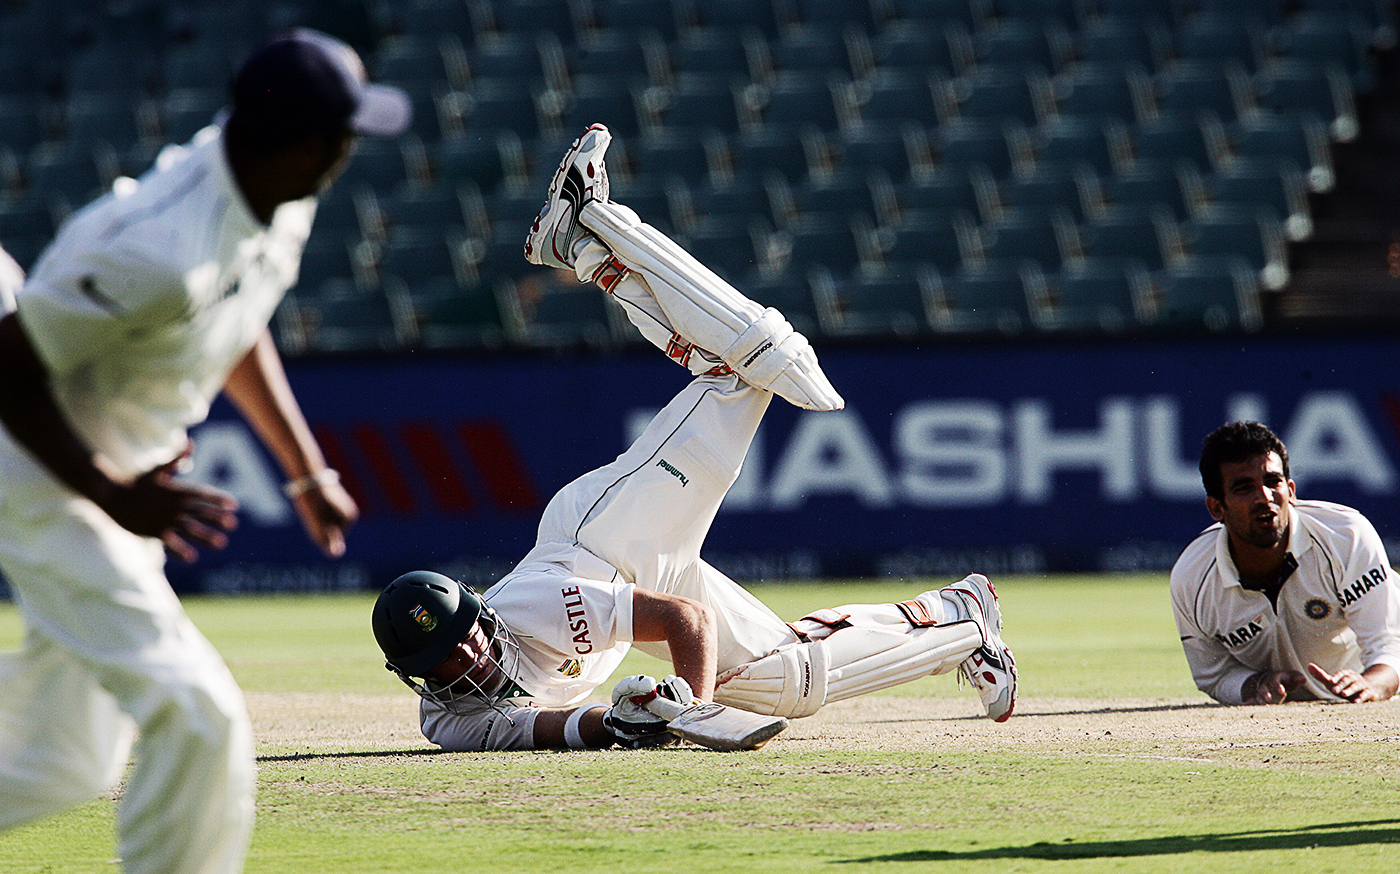 When AB de Villiers was run out by Zaheer Khan, South Africa had lost five wickets for 120 runs, chasing 402